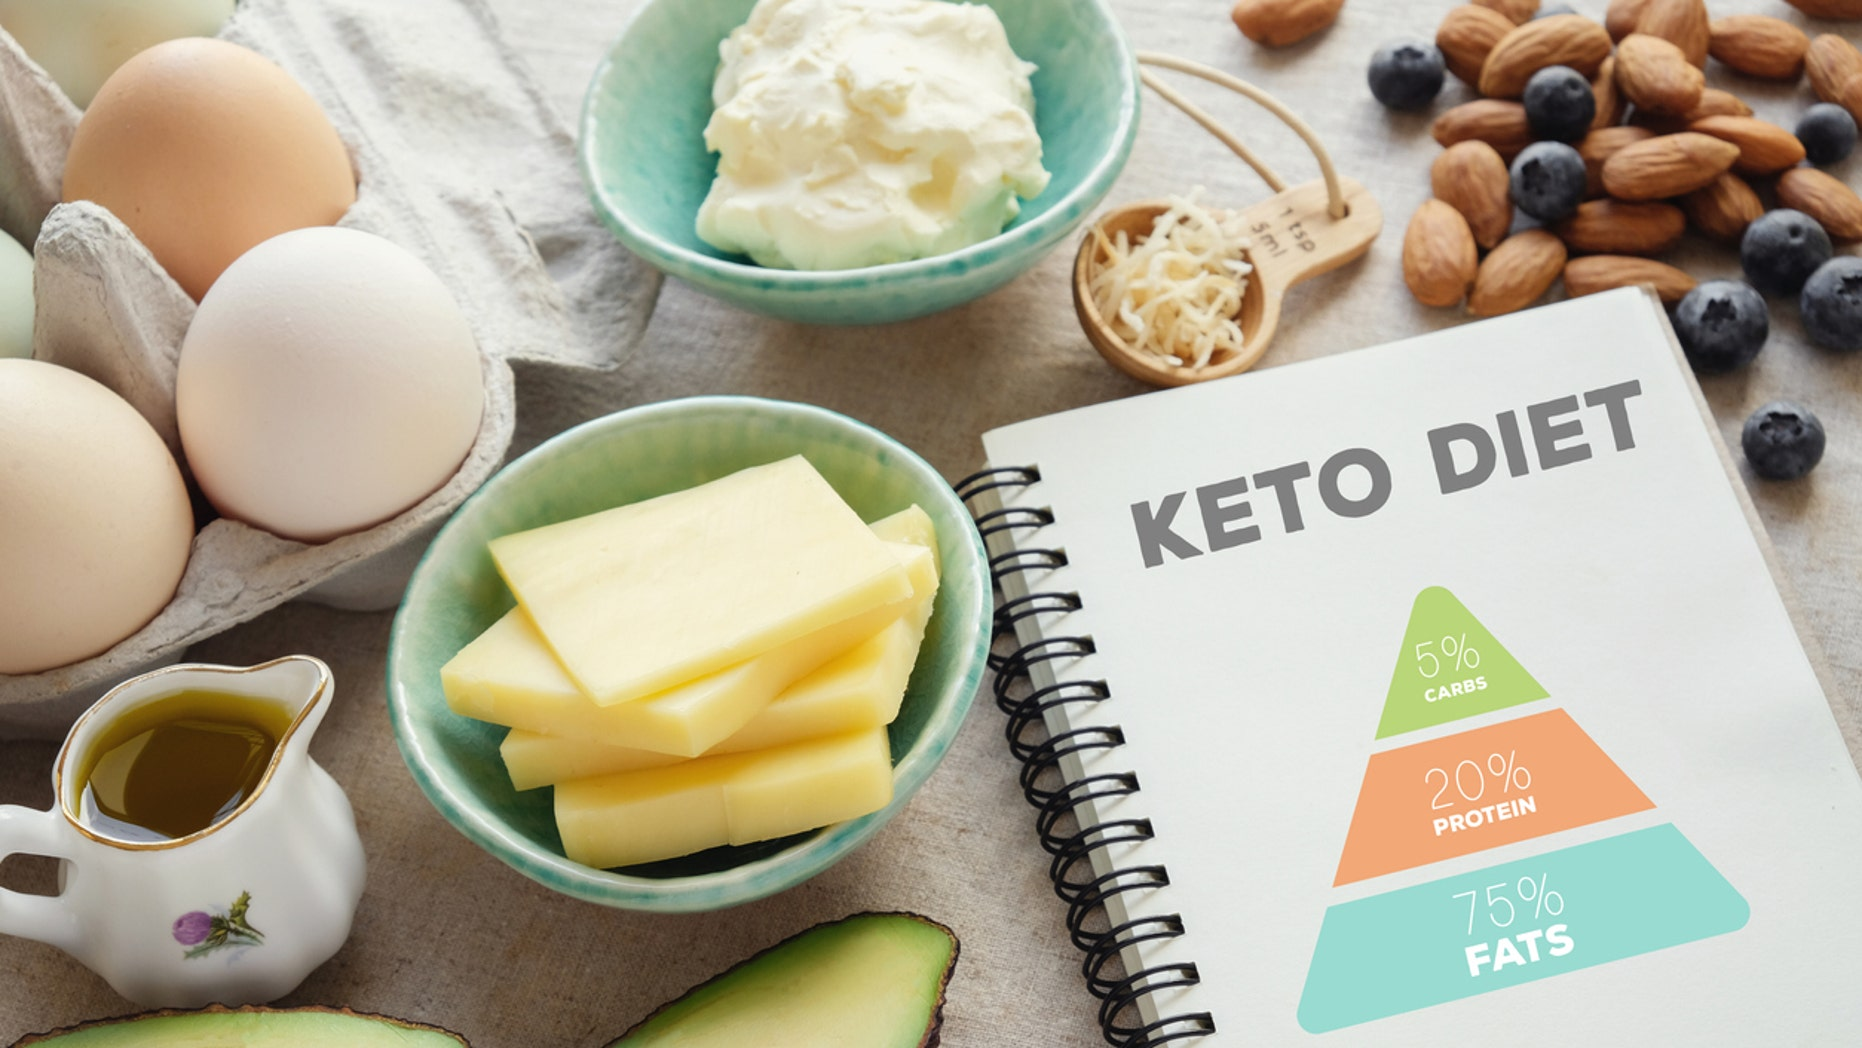 People following the keto diet aim to eat 75 percent of their calories from fat, 20 percent from protein, and 5 percent from carbohydrates.